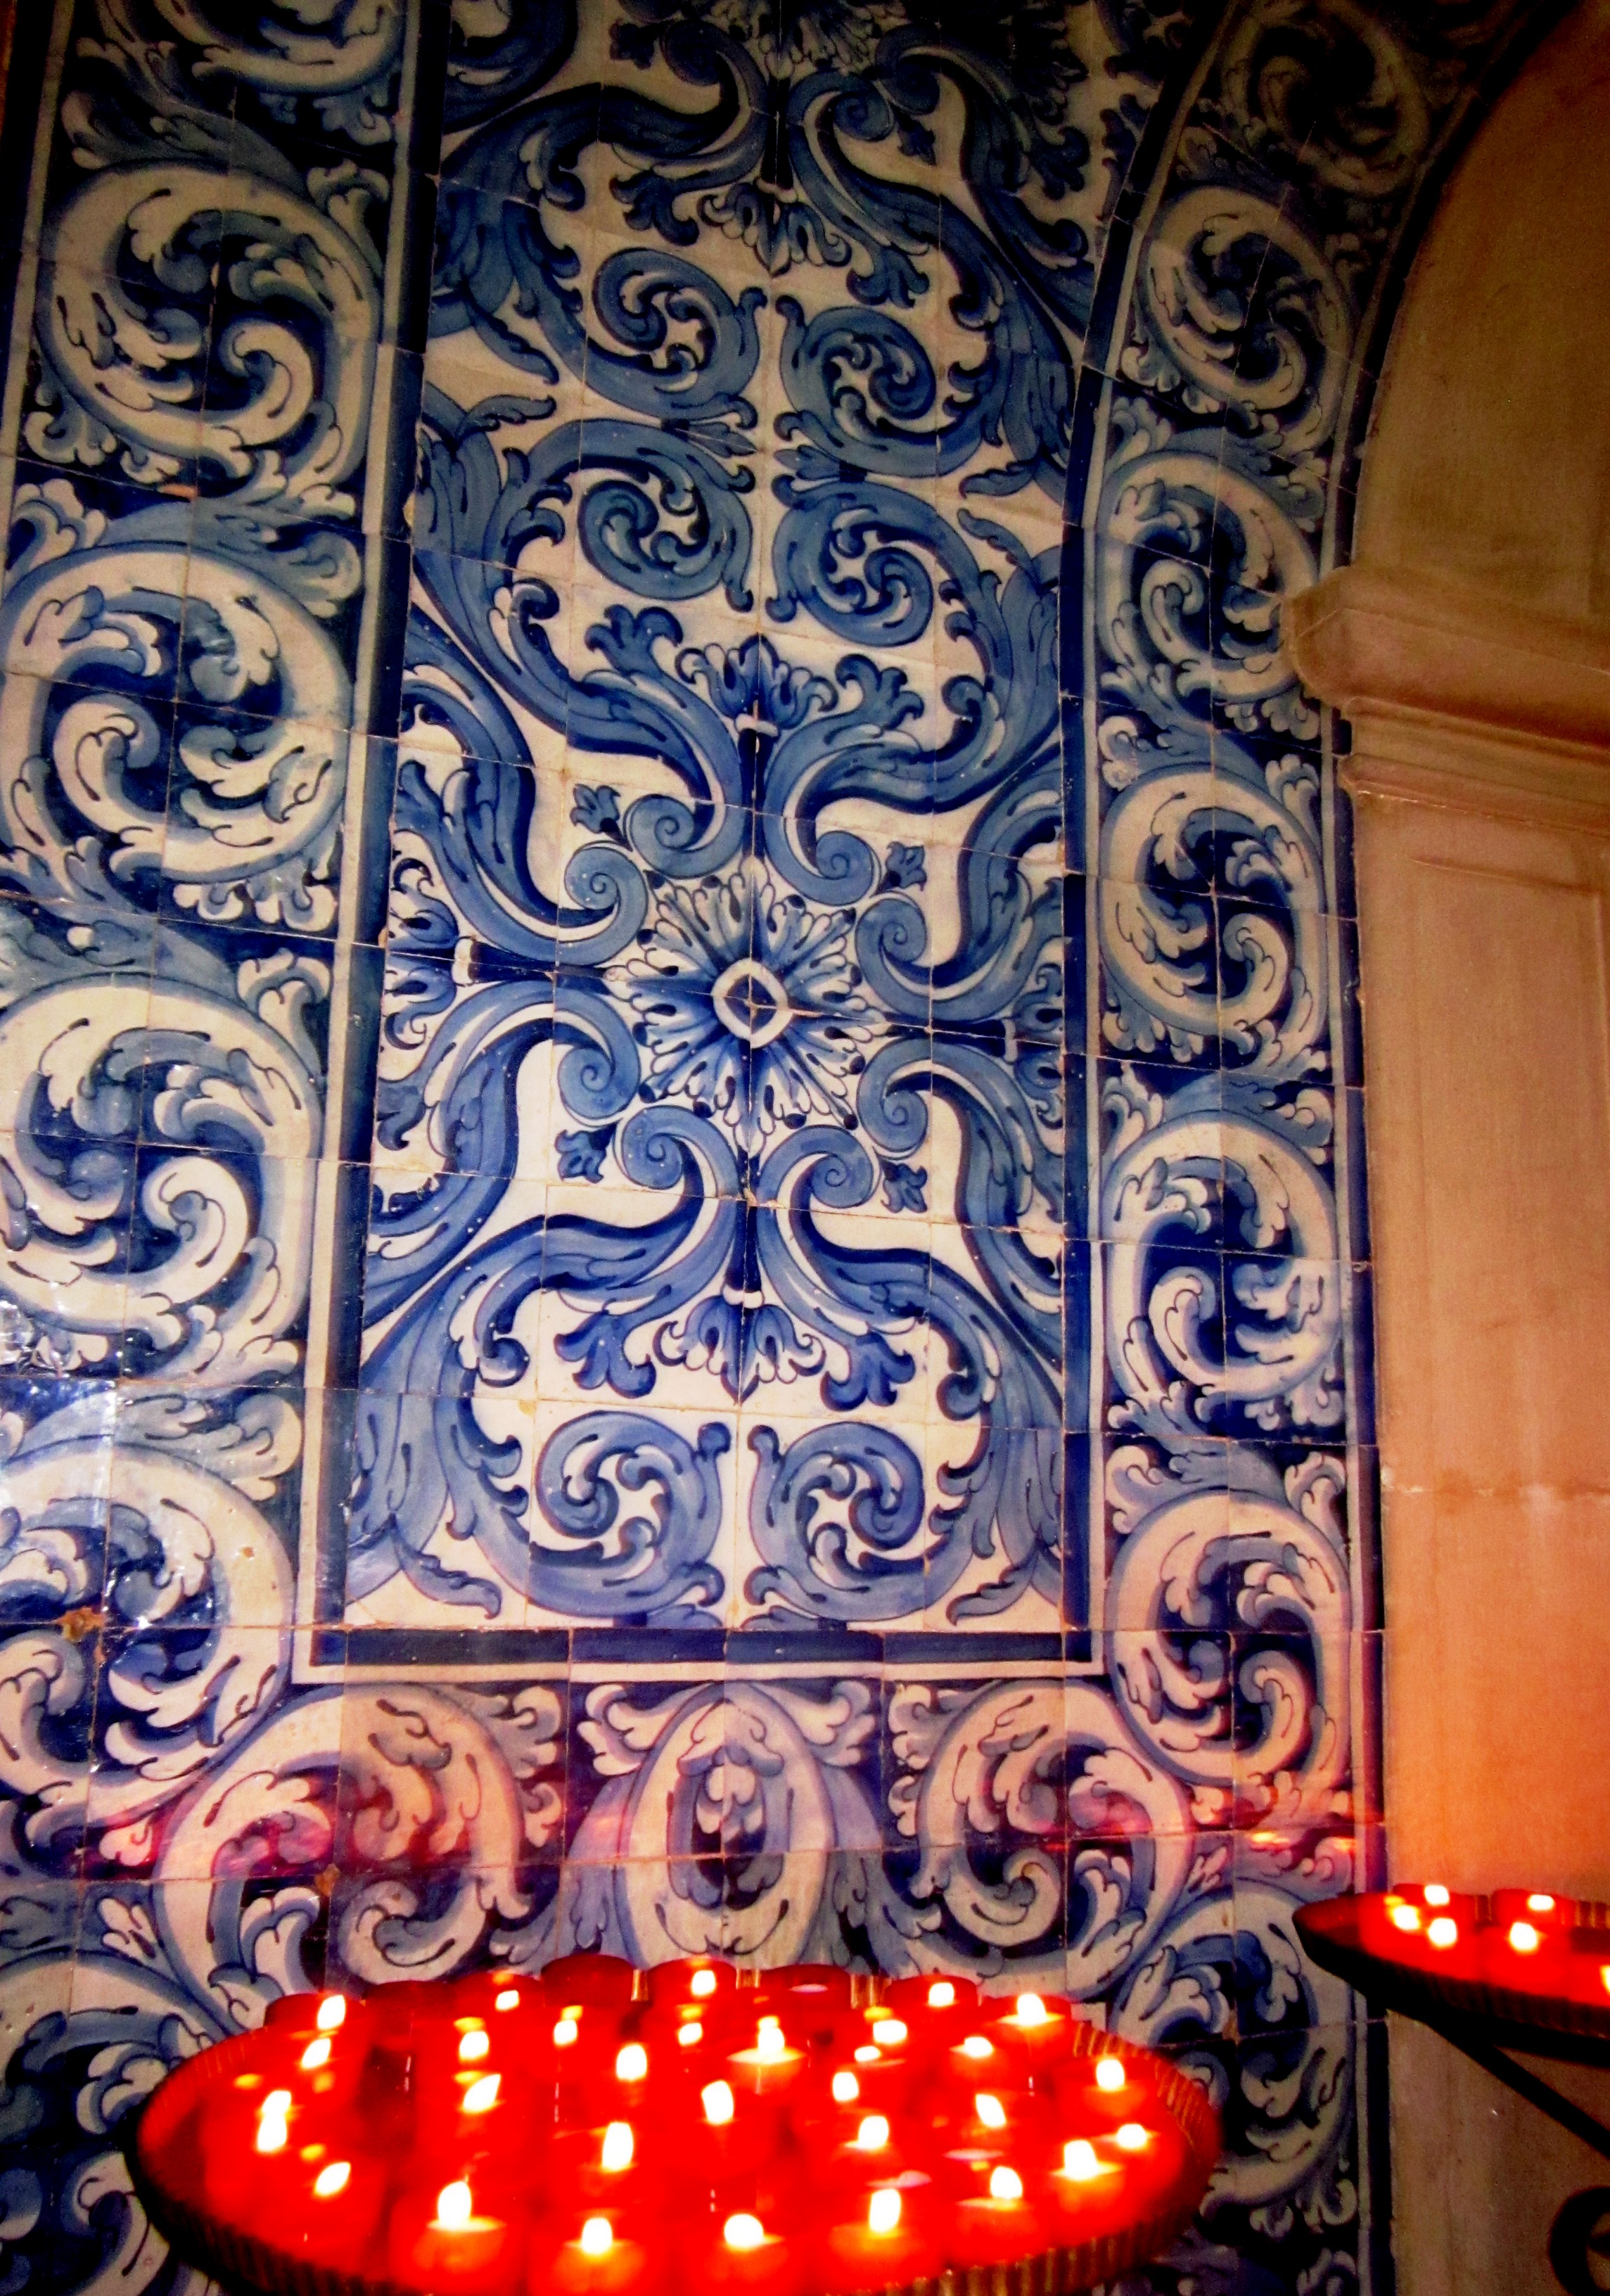 Tiles by candlelight - Obidos, Portugal